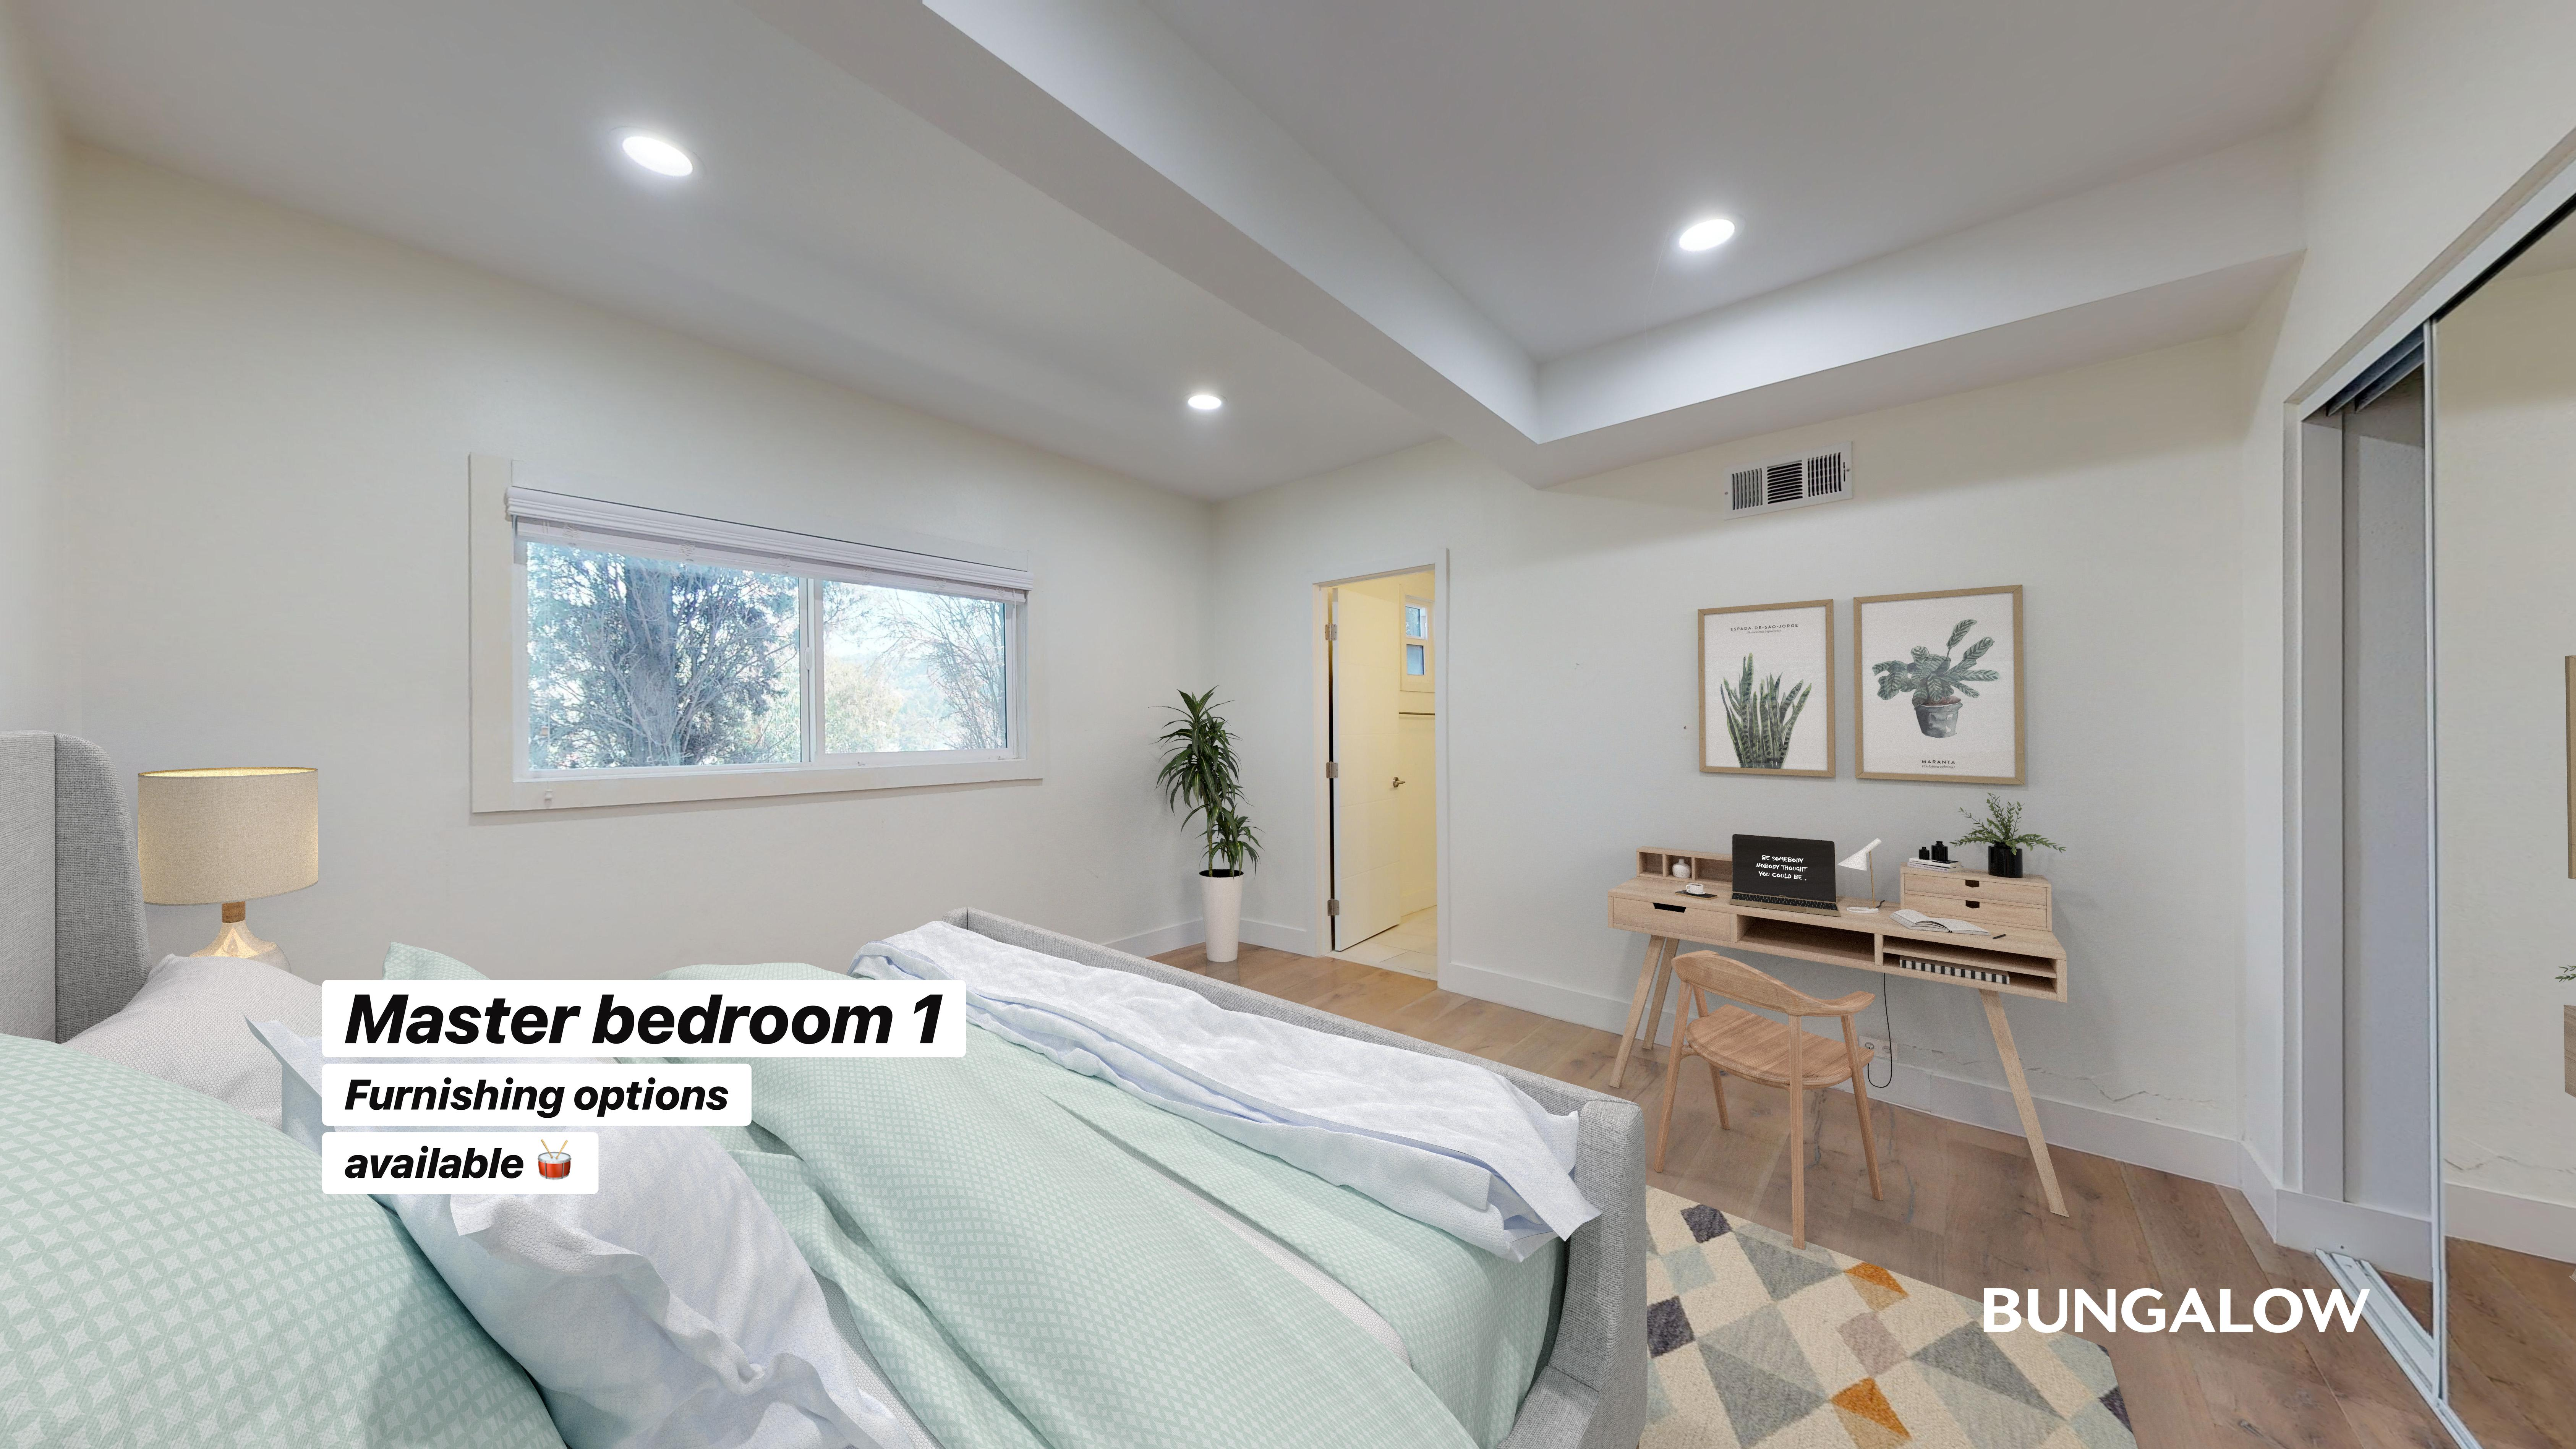 Private Room In Spacious Glassell Park Home With Amazing City Views for rent